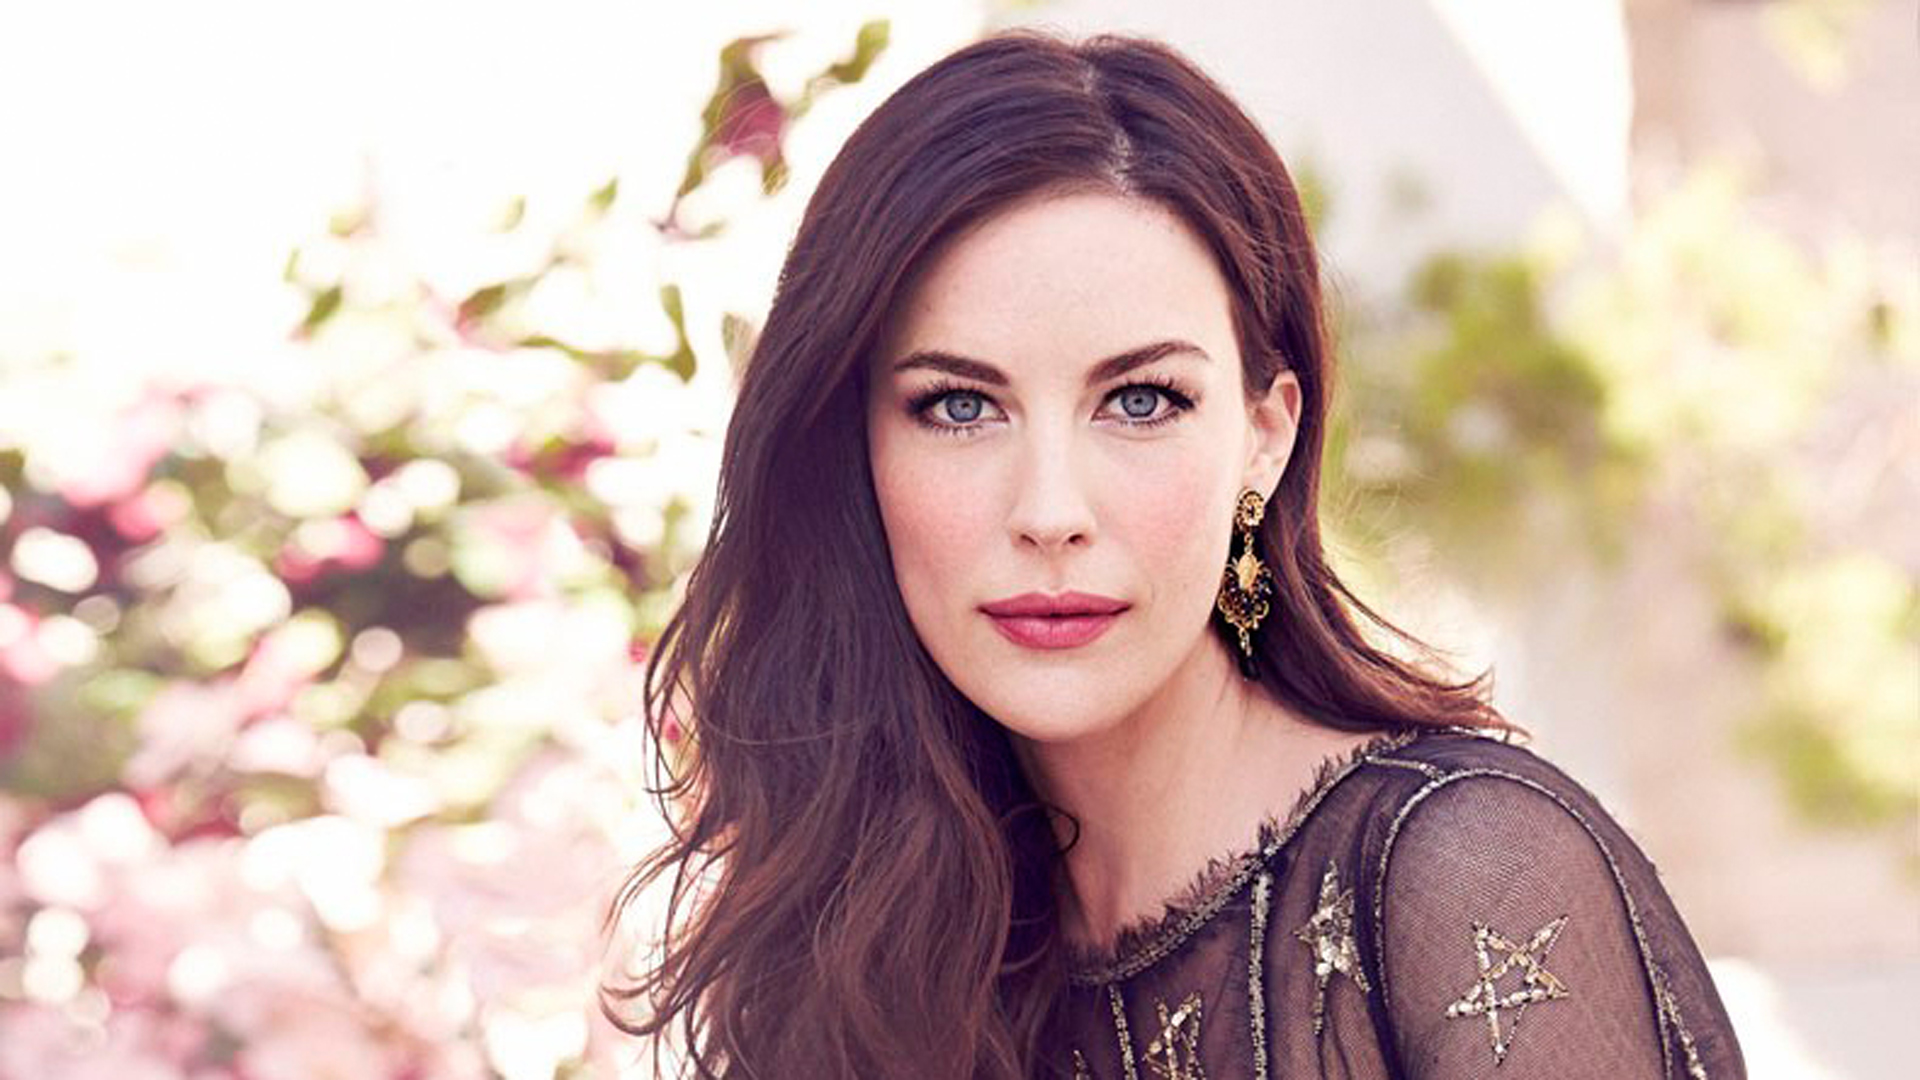 Liv-Tyler-Wallpapers-HD-02